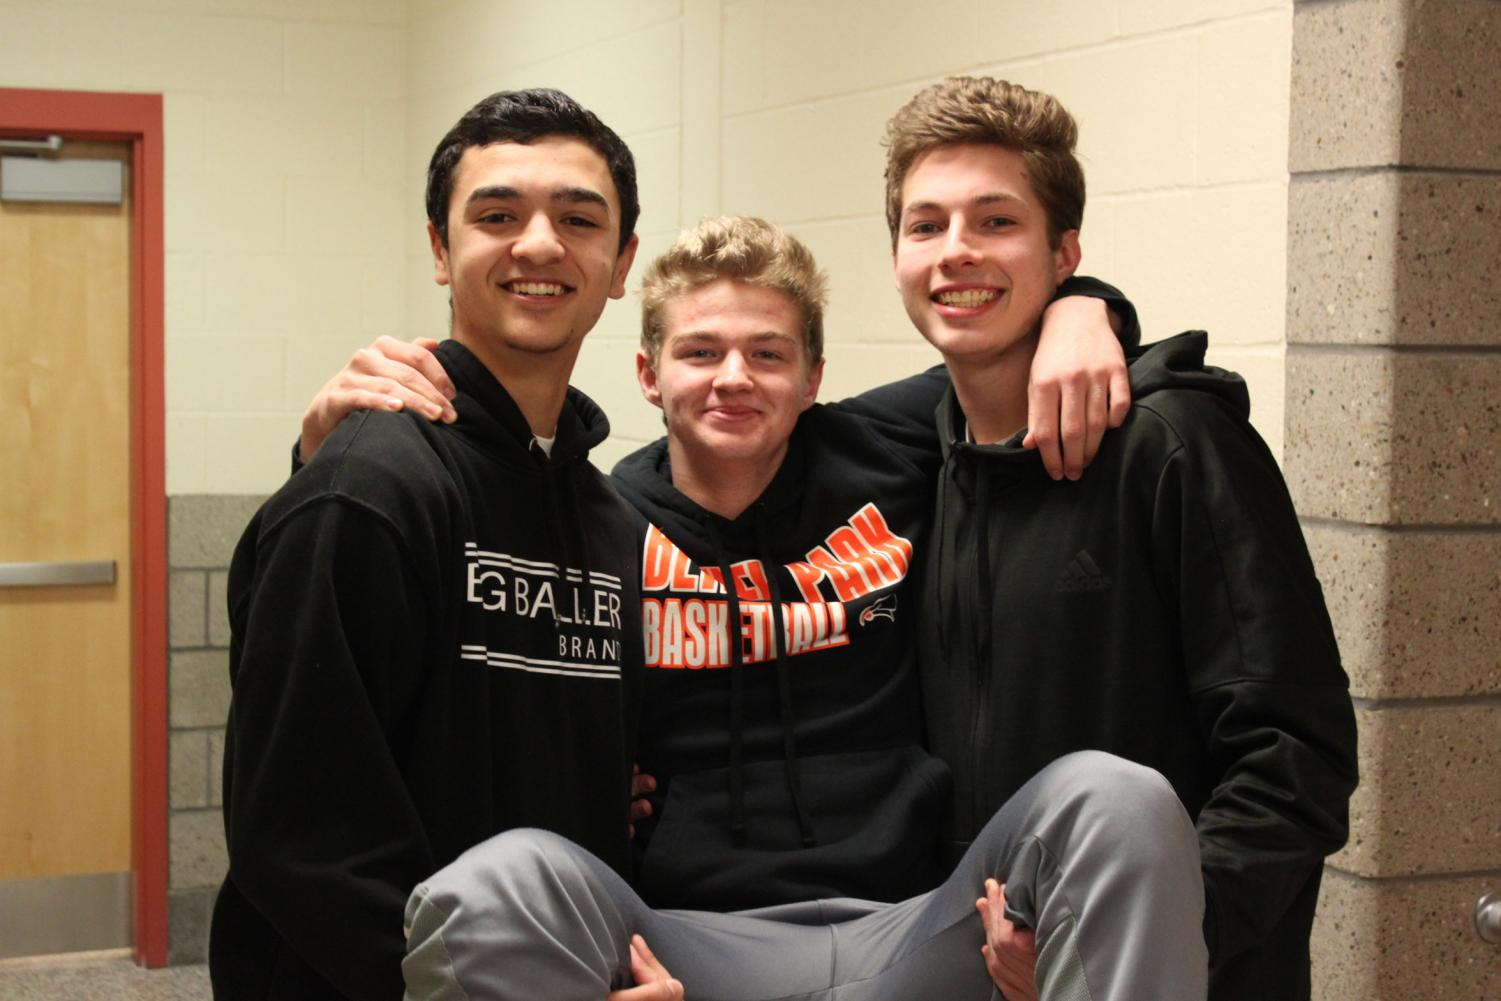 Nick Bomar, Dave Scott, and Jake Nuttridge won the Best Friends award. (Be sure to check out the Goofy Awards section of the yearbook to see photos of all the awardees).